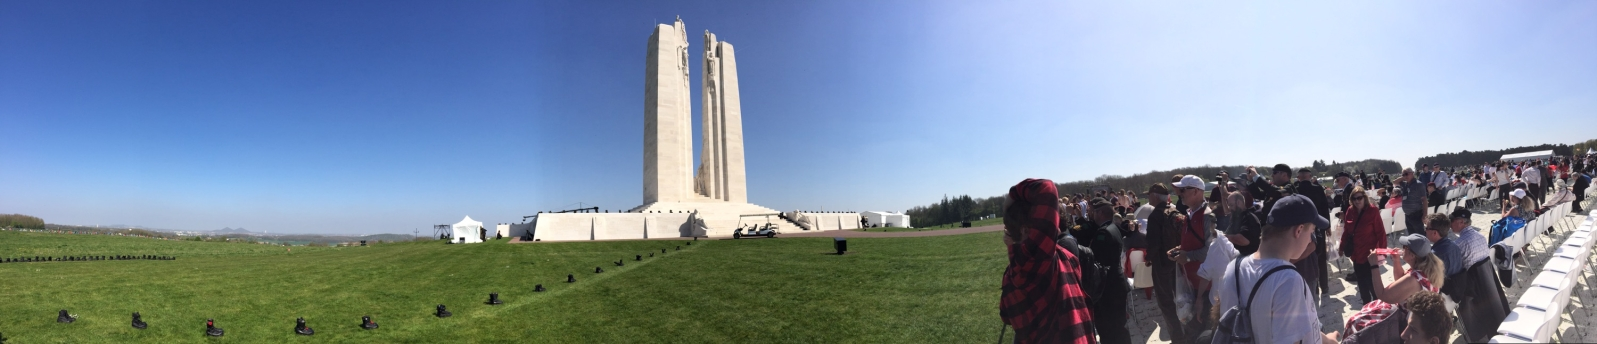 Canadian National Vimy Memorial - April 9, 1917 - Image Courtesy of MWO Chris Chaban